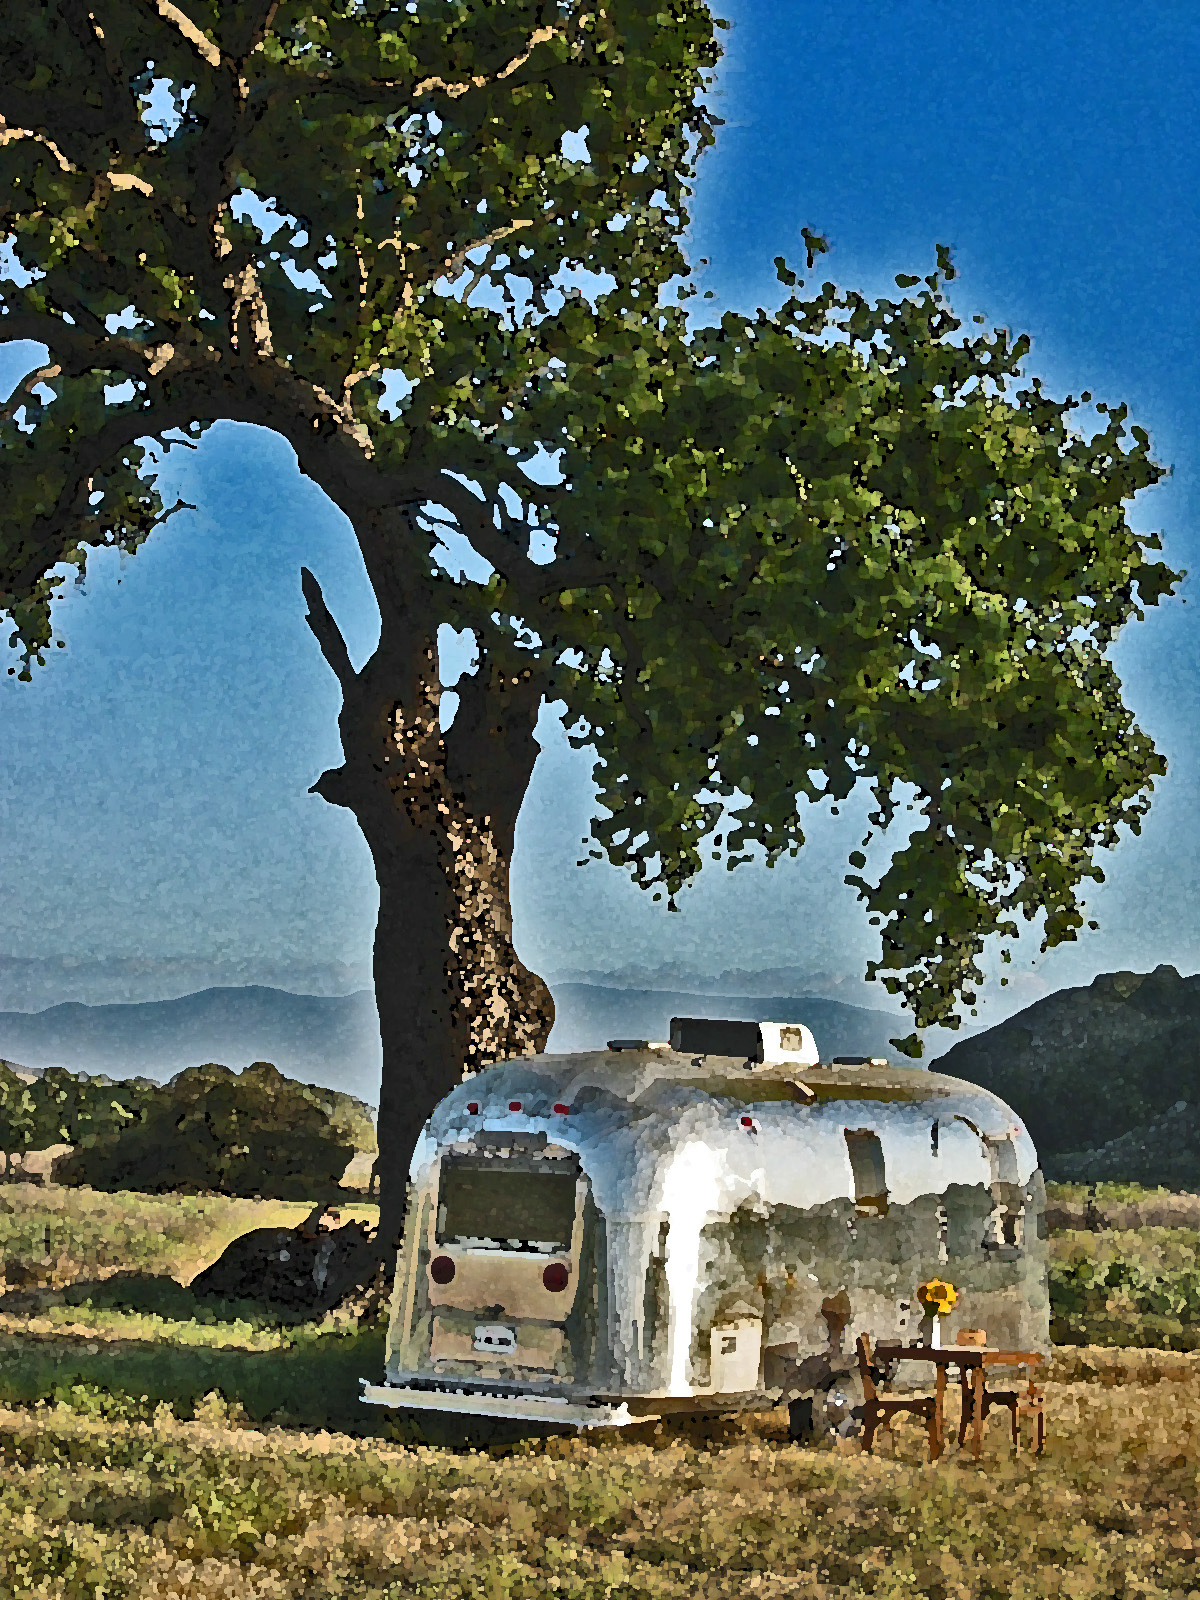 Click image for larger version  Name:airstream watercolor.jpg Views:73 Size:940.2 KB ID:36307